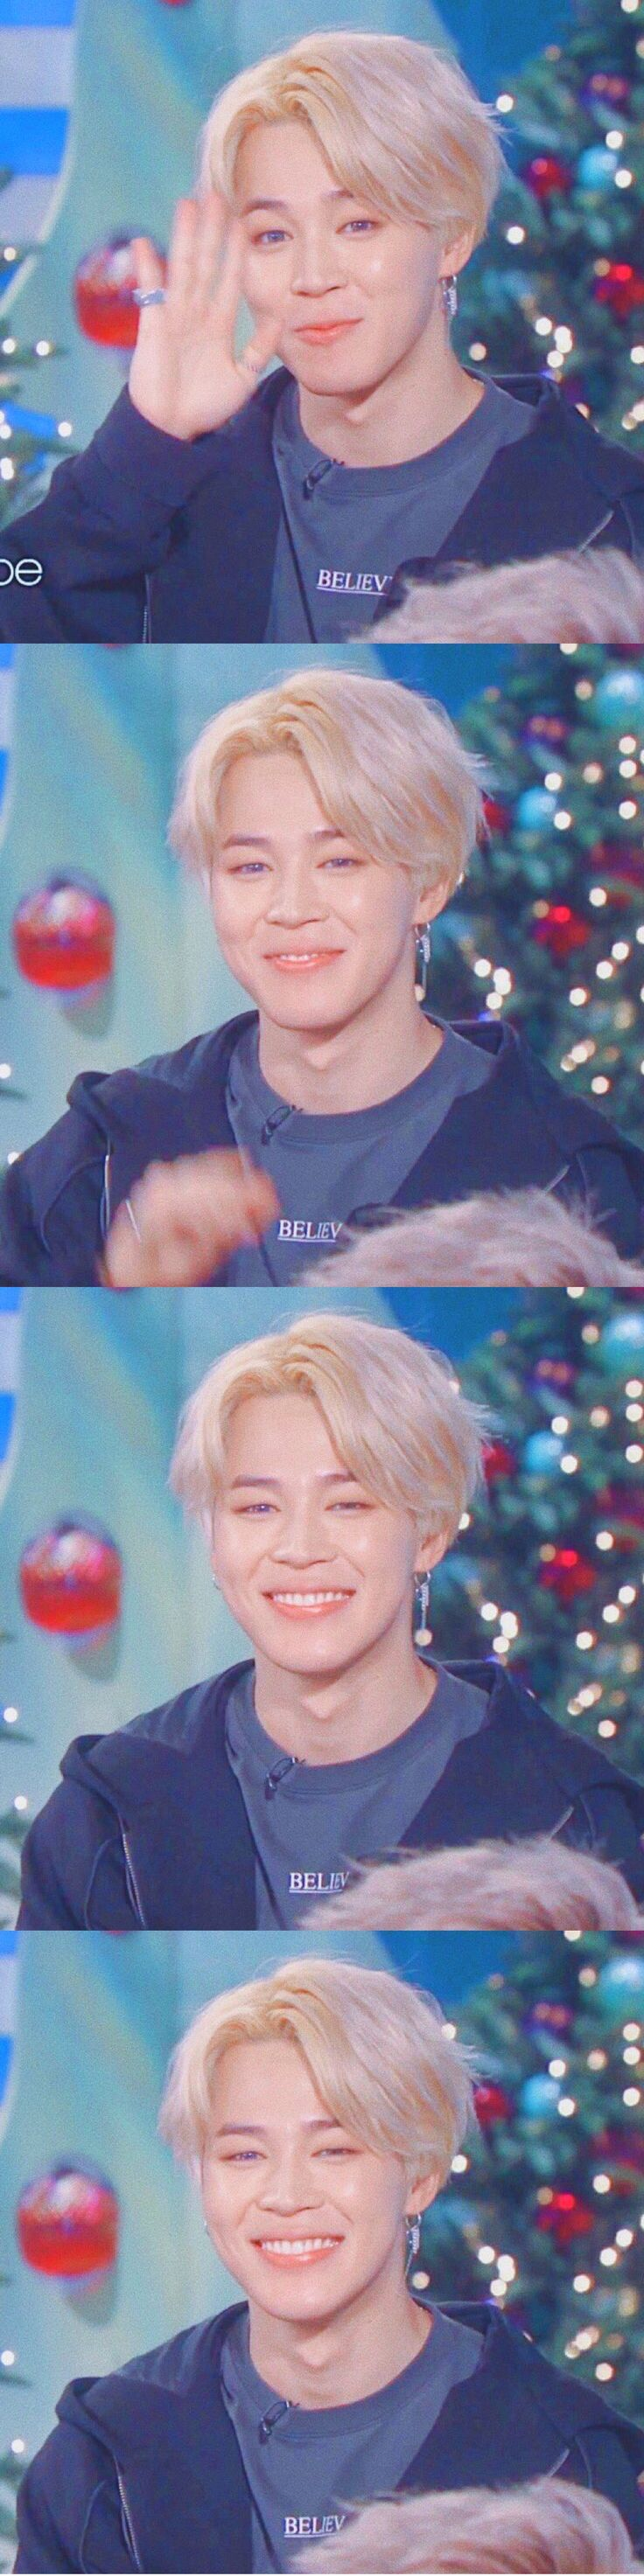 Chimchim so gosh darn smiley and cute